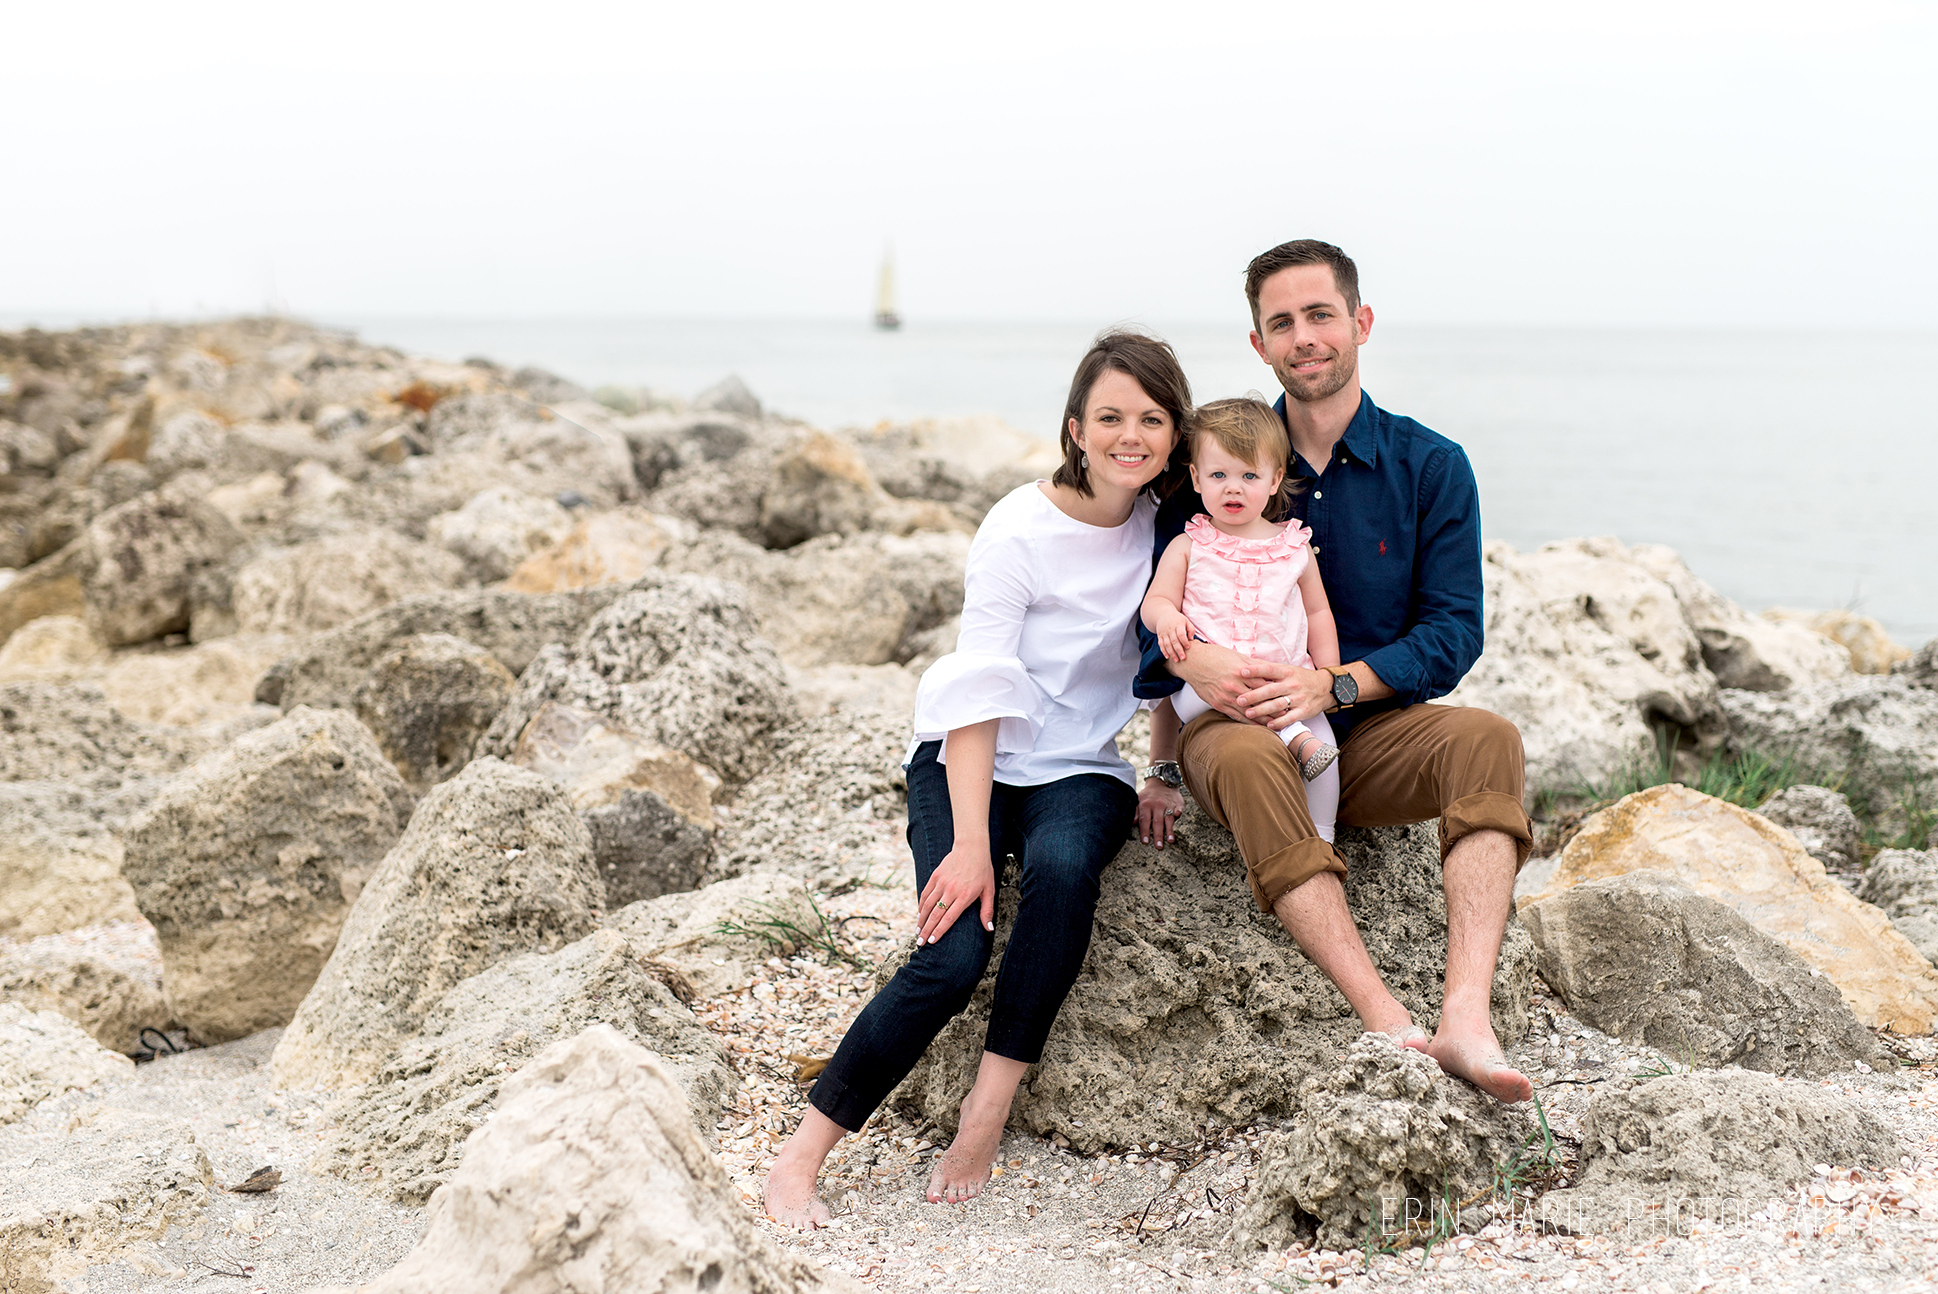 Sandkey_Beach_Family_Photographer_21.jpg